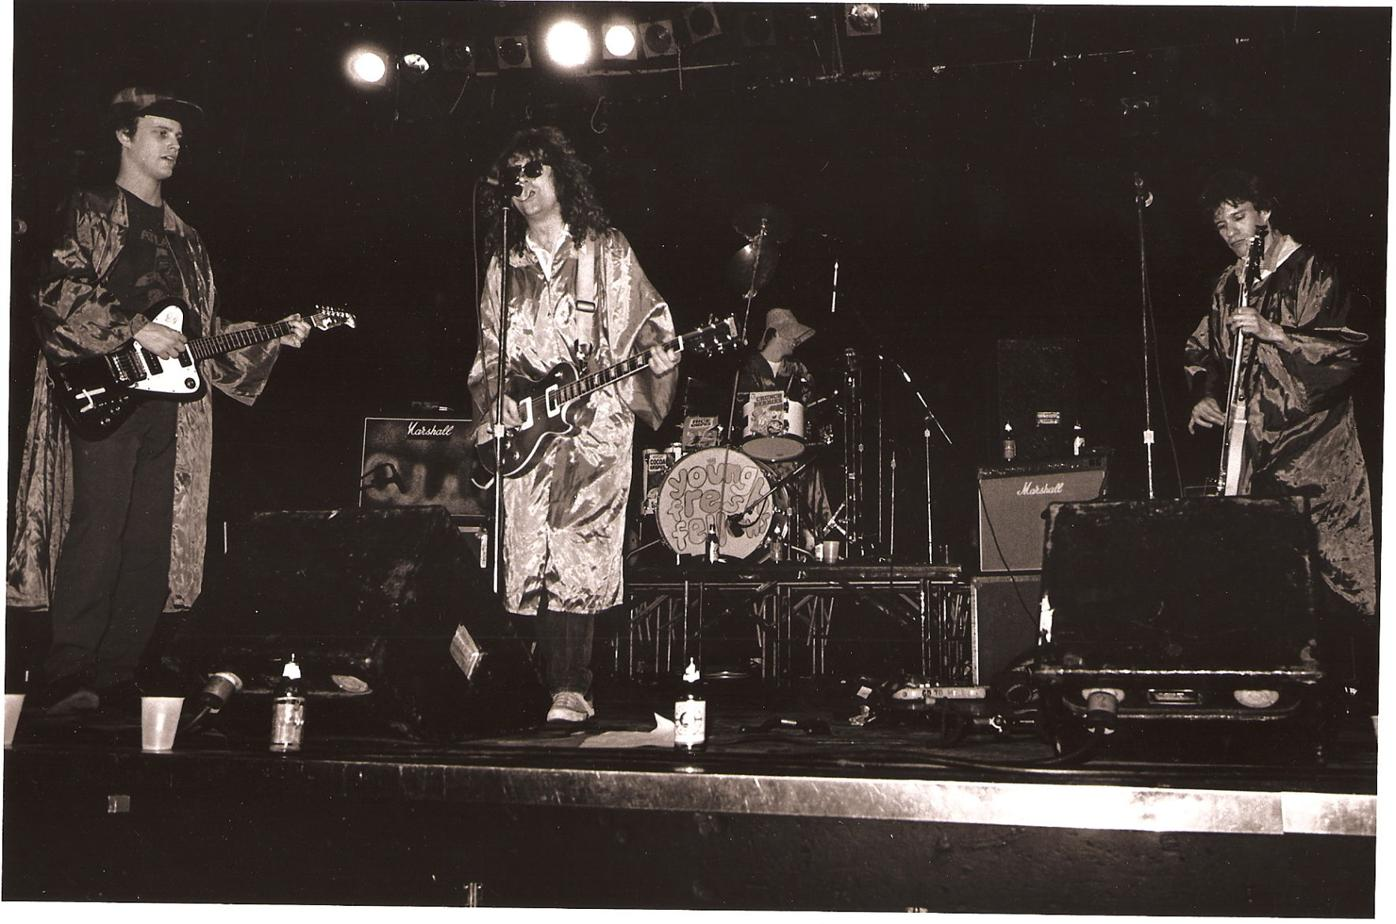 The Replacements — Portland, 1987: Was it the band's worst show ever?